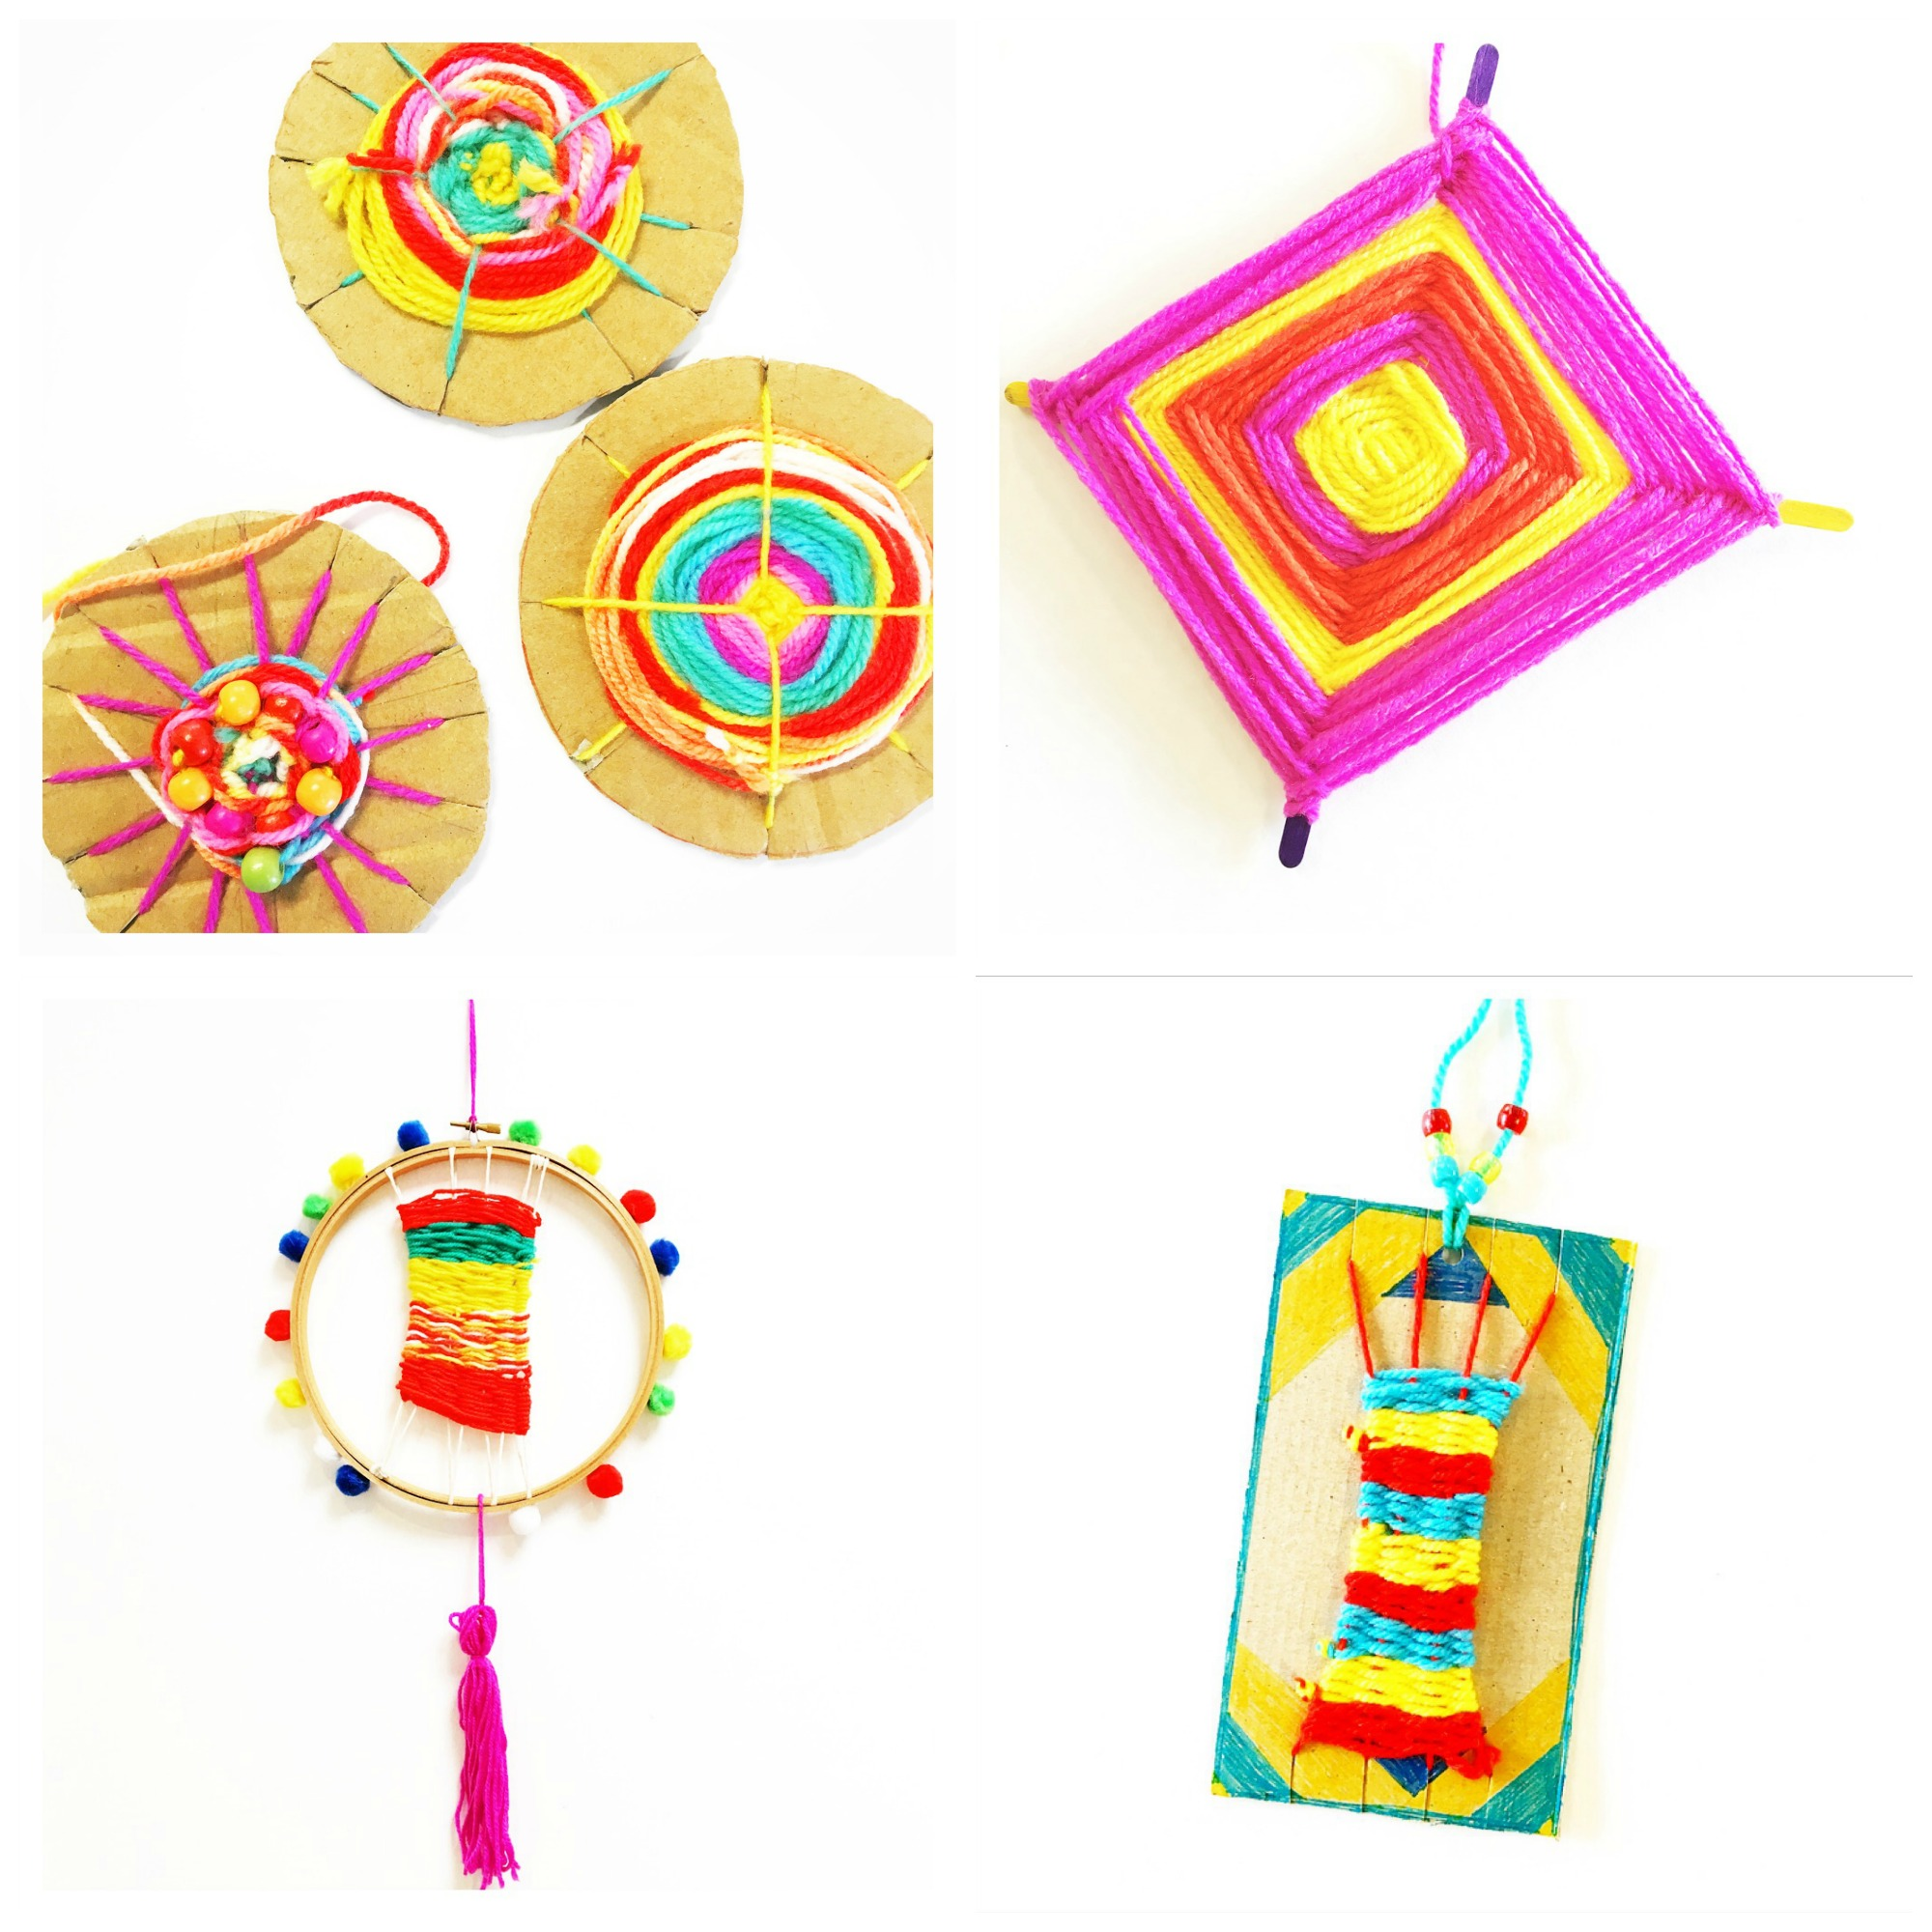 4 Weaving Projects for Kids